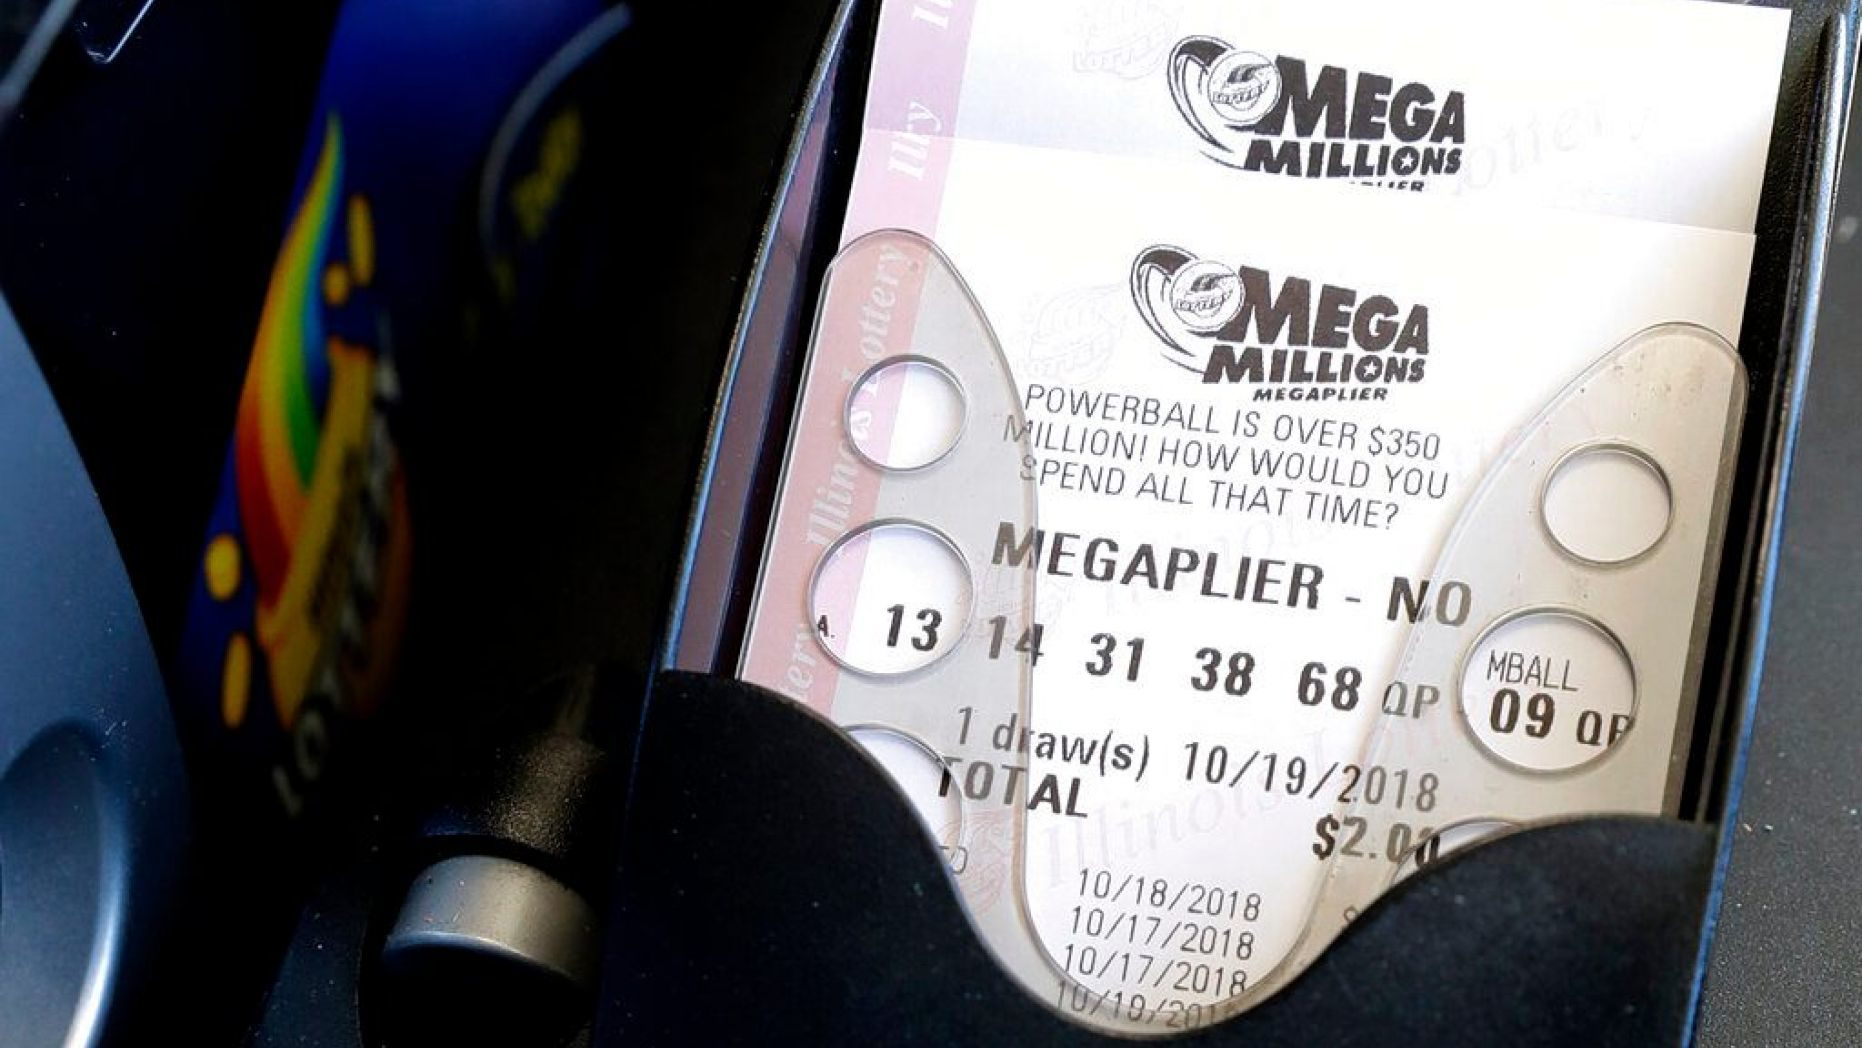 Ex-wife of $273M lotto winner says she still doesn't want him back: report thumbnail